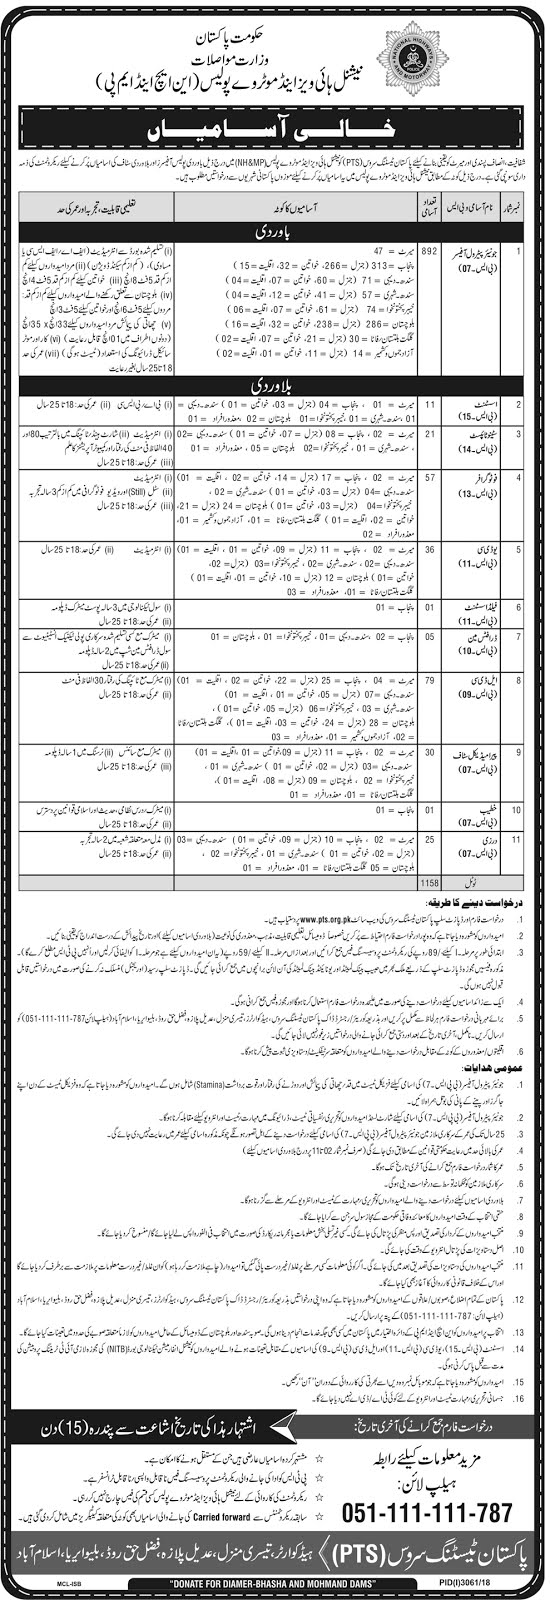 national highways and motorway police,jobs in national highways and motorway police,motorway police jobs,national highway and motorway police jobs 2018,motorway police,motorway police jobs 2019,pakistan motorway police,national highways motorway police,national highways,national highway and motorway police jobs,jobs in pakistan,paperpk motorway police jobs,motorway police jobs 2018 pts jobs,jobs,pts jobs 2018,nts jobs,jobs in pakistan,wapda jobs 2018,wapda jobs,wapda jobs nts,railway jobs,wapda jobs 2018 application form,govt jobs,private jobs,railway jobs 2018,wapda jobs 2018 in lahore,pts,pts railway jobs,jobs info,pts wapda jobs 2018,pts jobs railway 2018,pts railway jobs 2018,jobs in wapda,pakistan railway jobs 2018,wapda jobs 2018 punjab,ots jobs,wapda.gov.pk jobs 2018